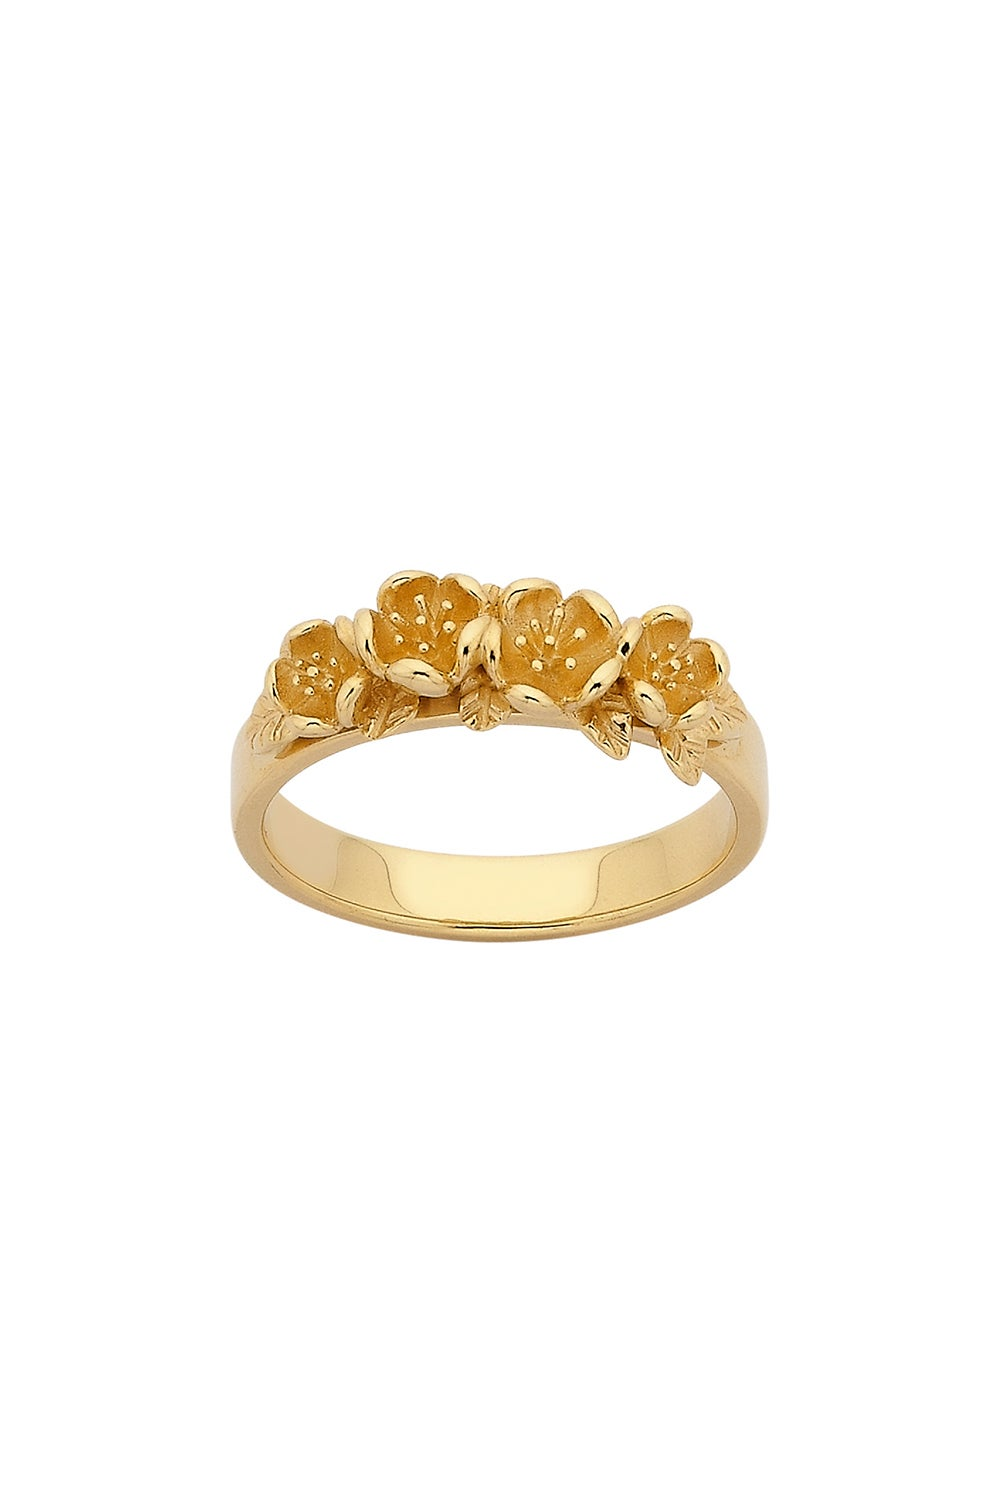 Wreath Ring Gold